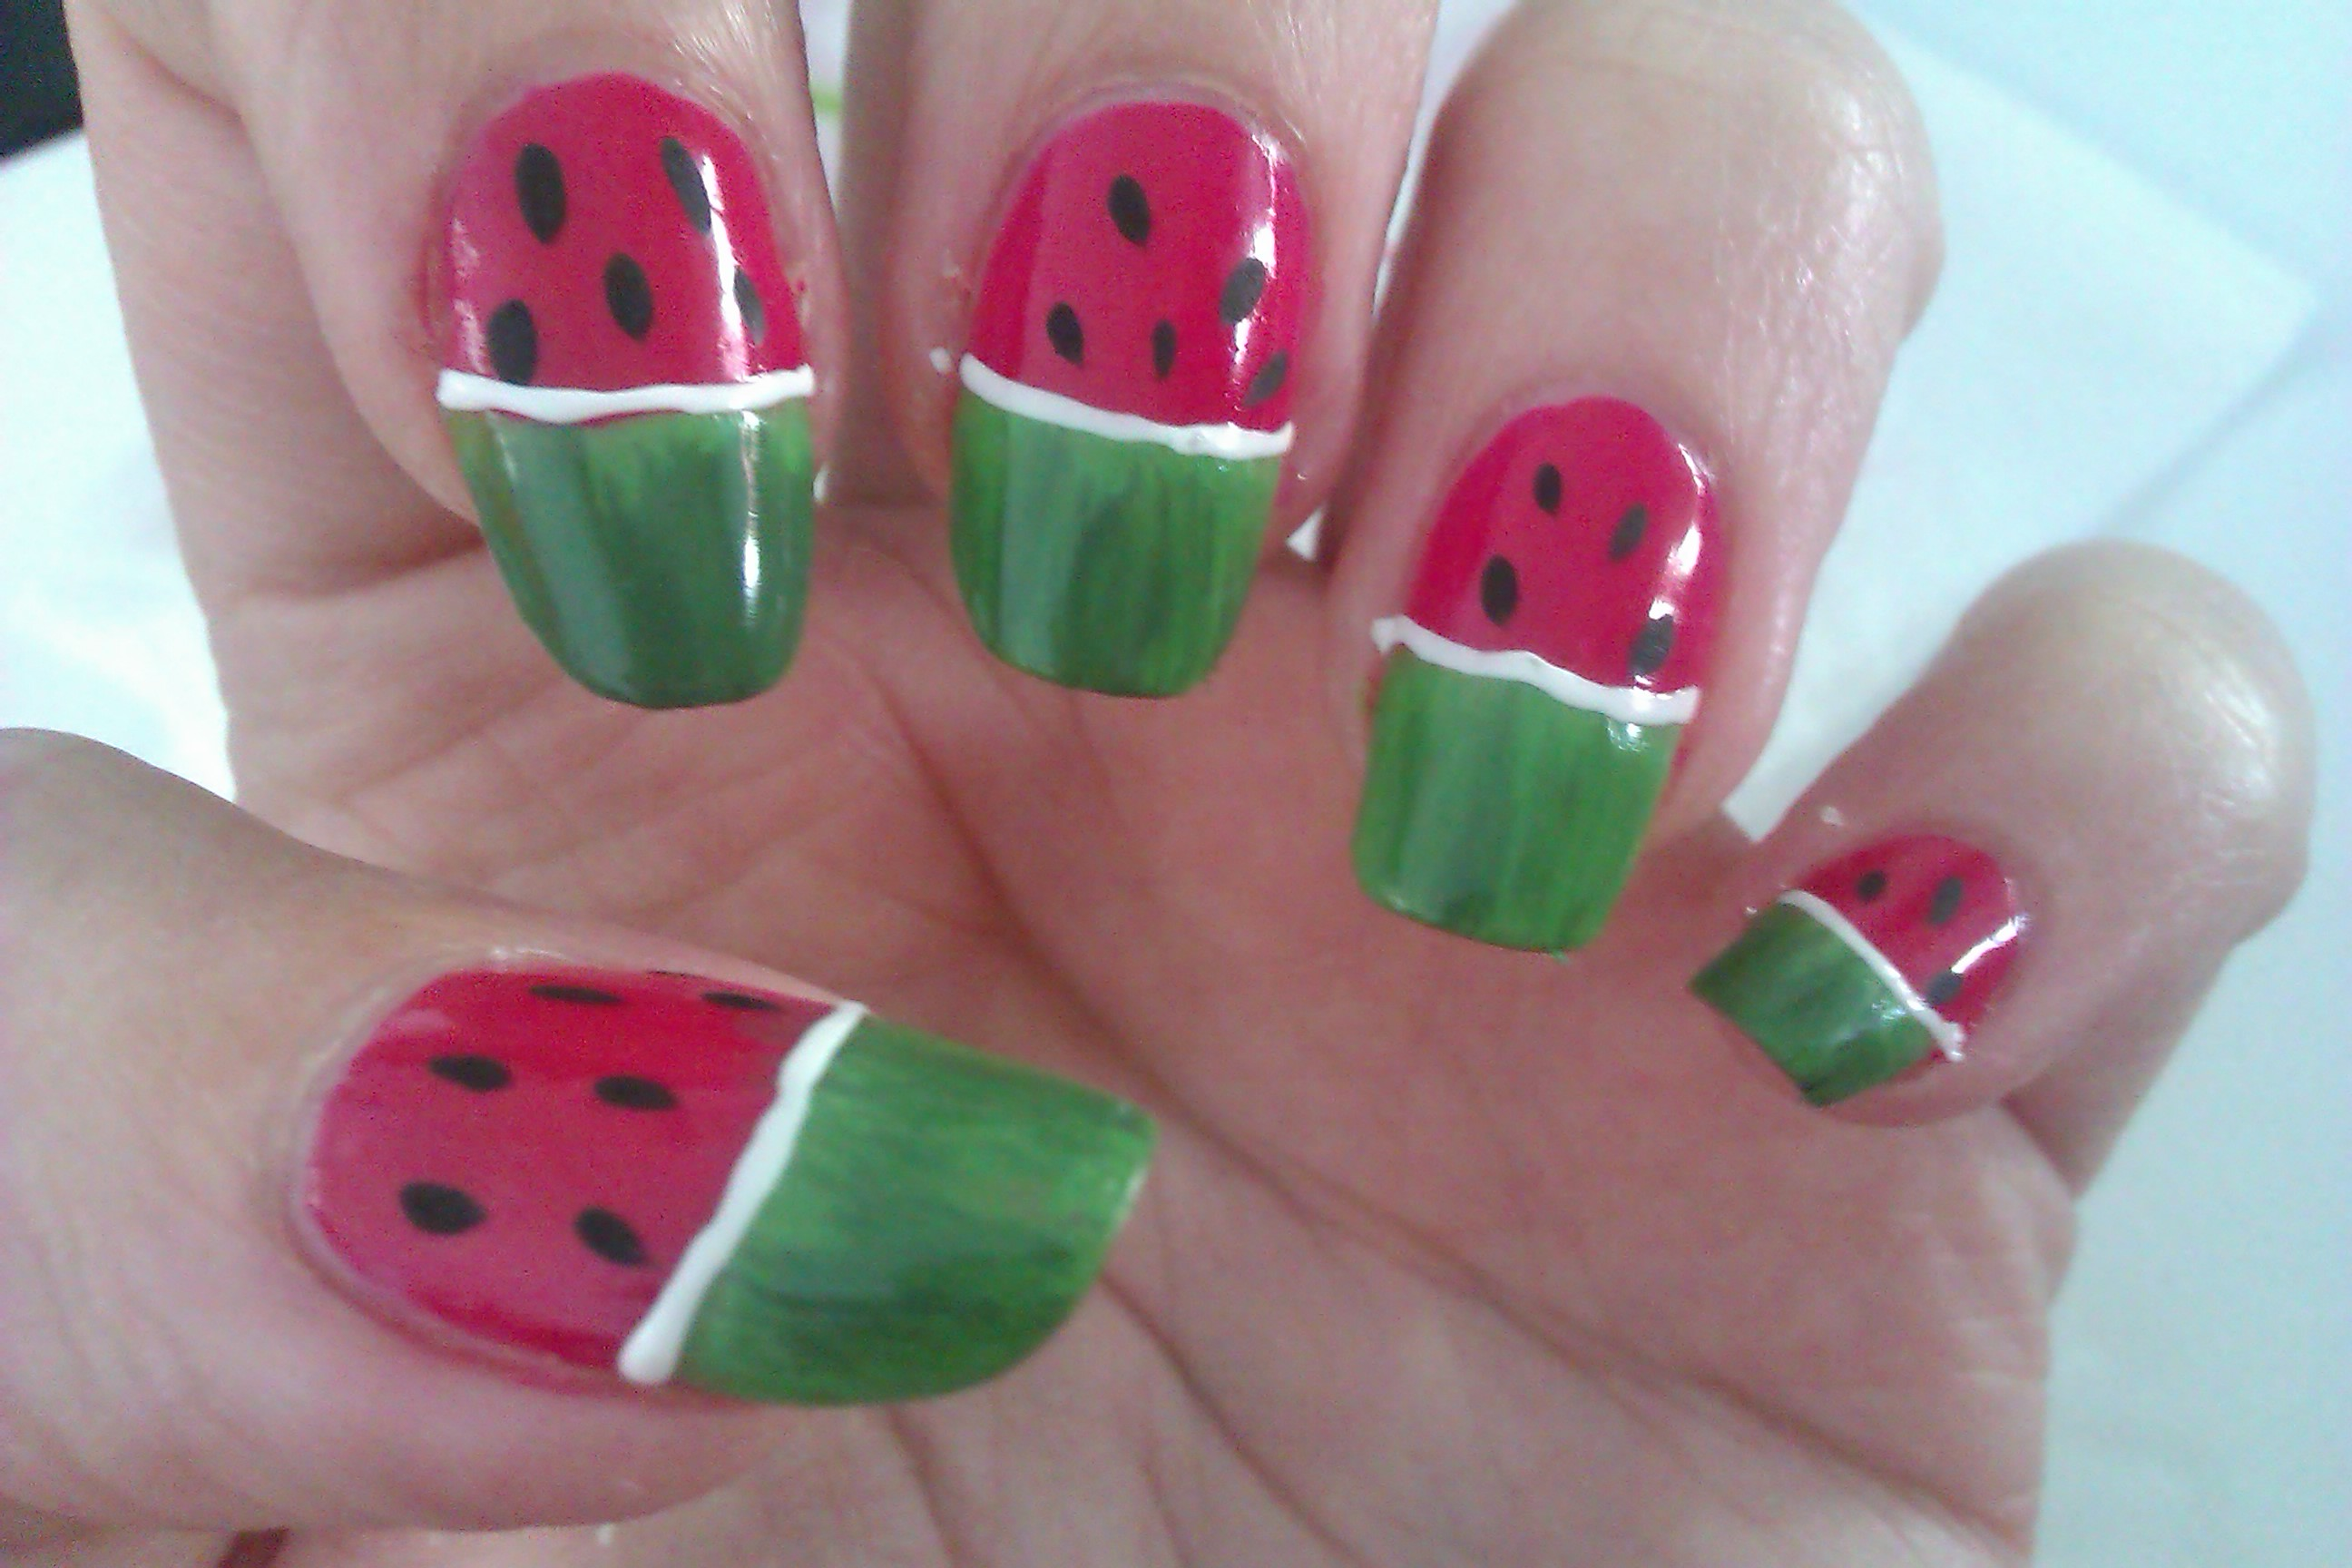 Simple beautiful nail art designs - Easy nail design ideas to do at home ...